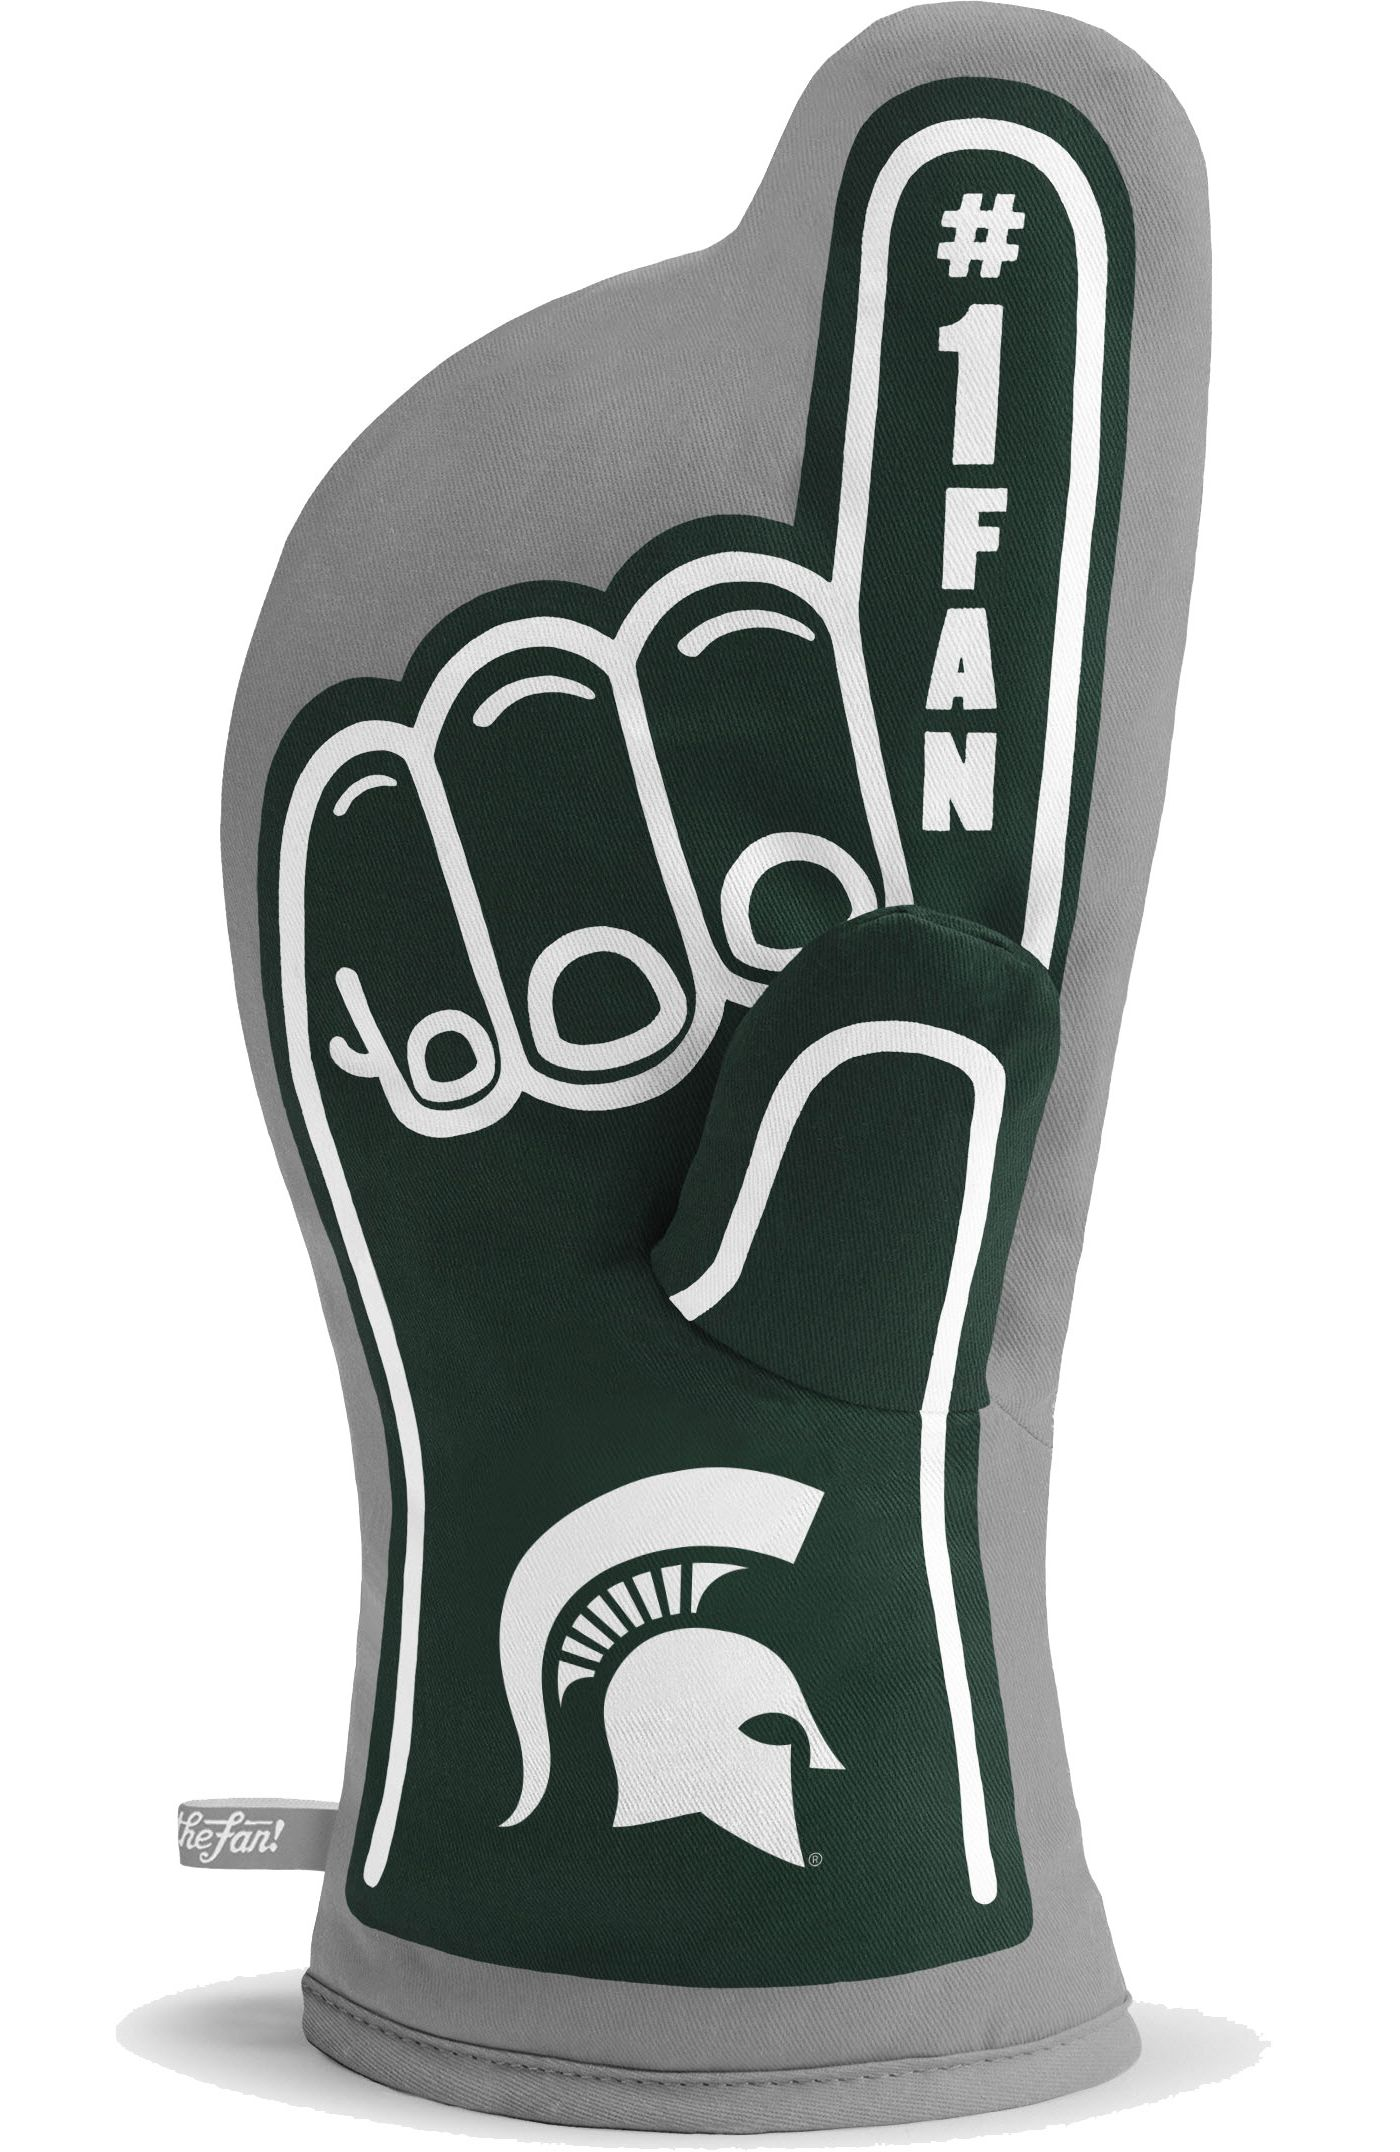 You The Fan Michigan State Spartans #1 Oven Mitt